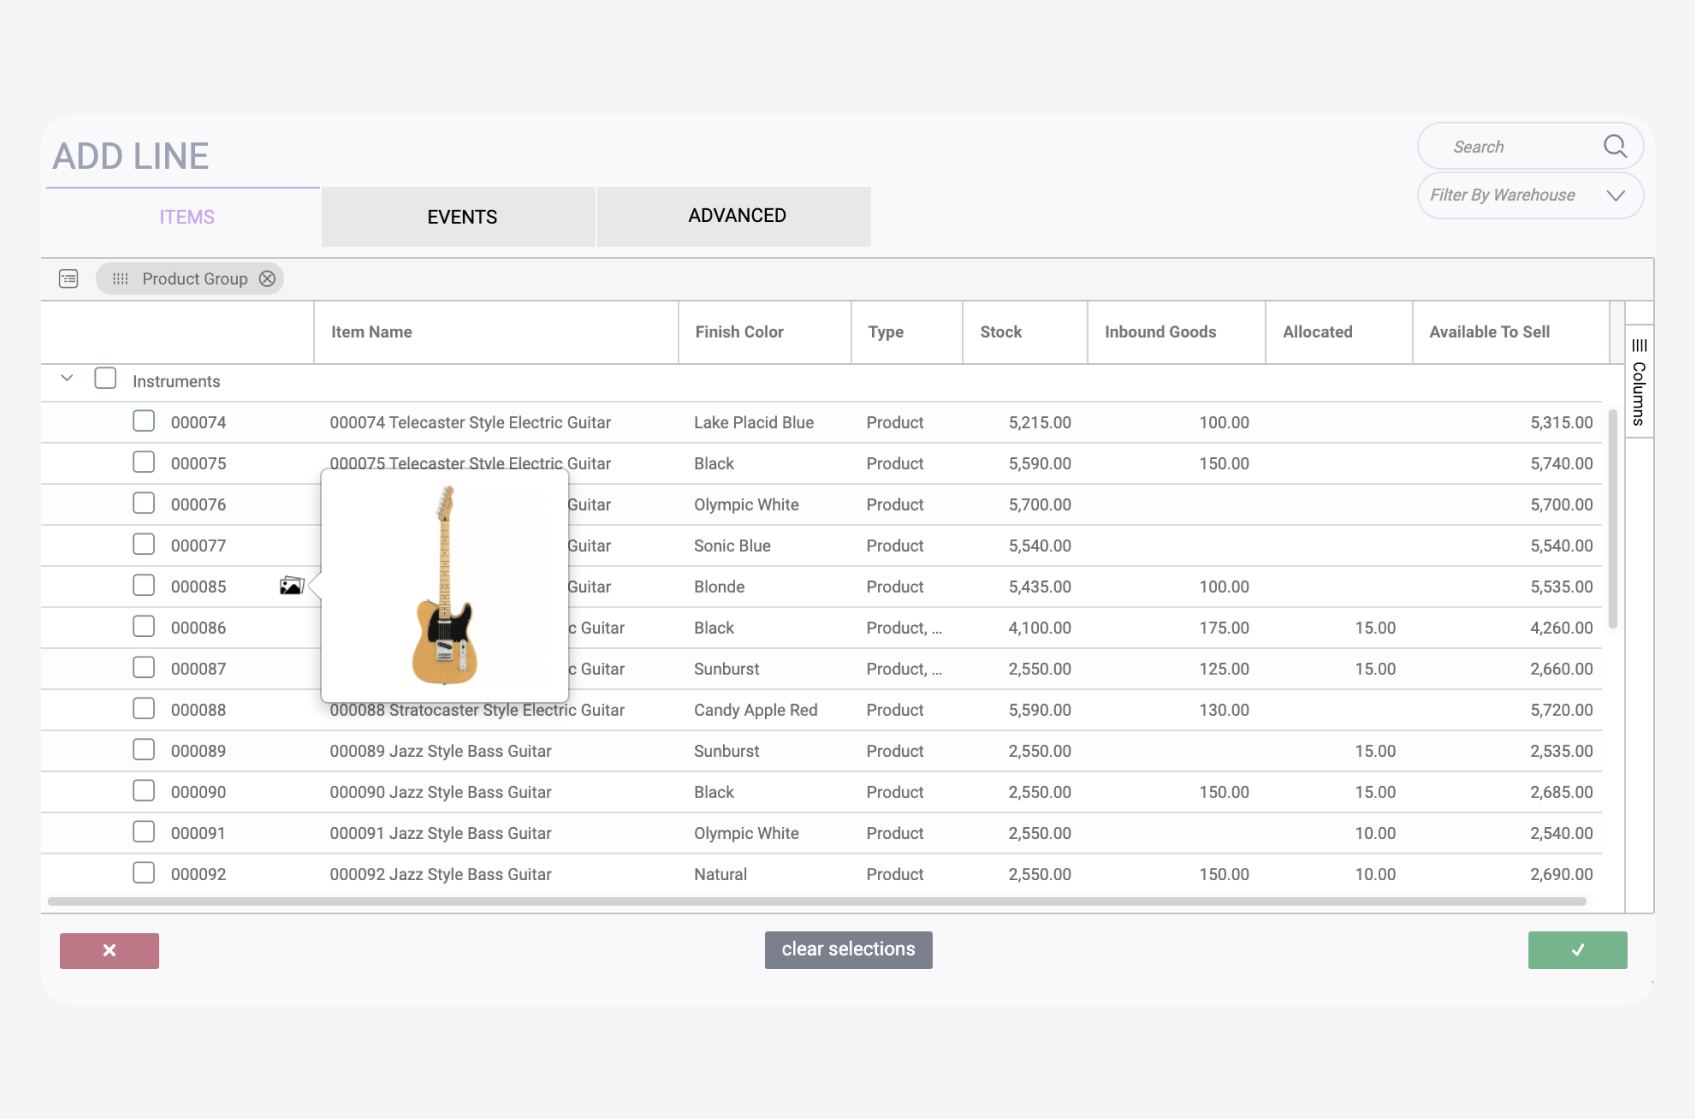 Paragon centralizes your data and allows you to manage your inventory.